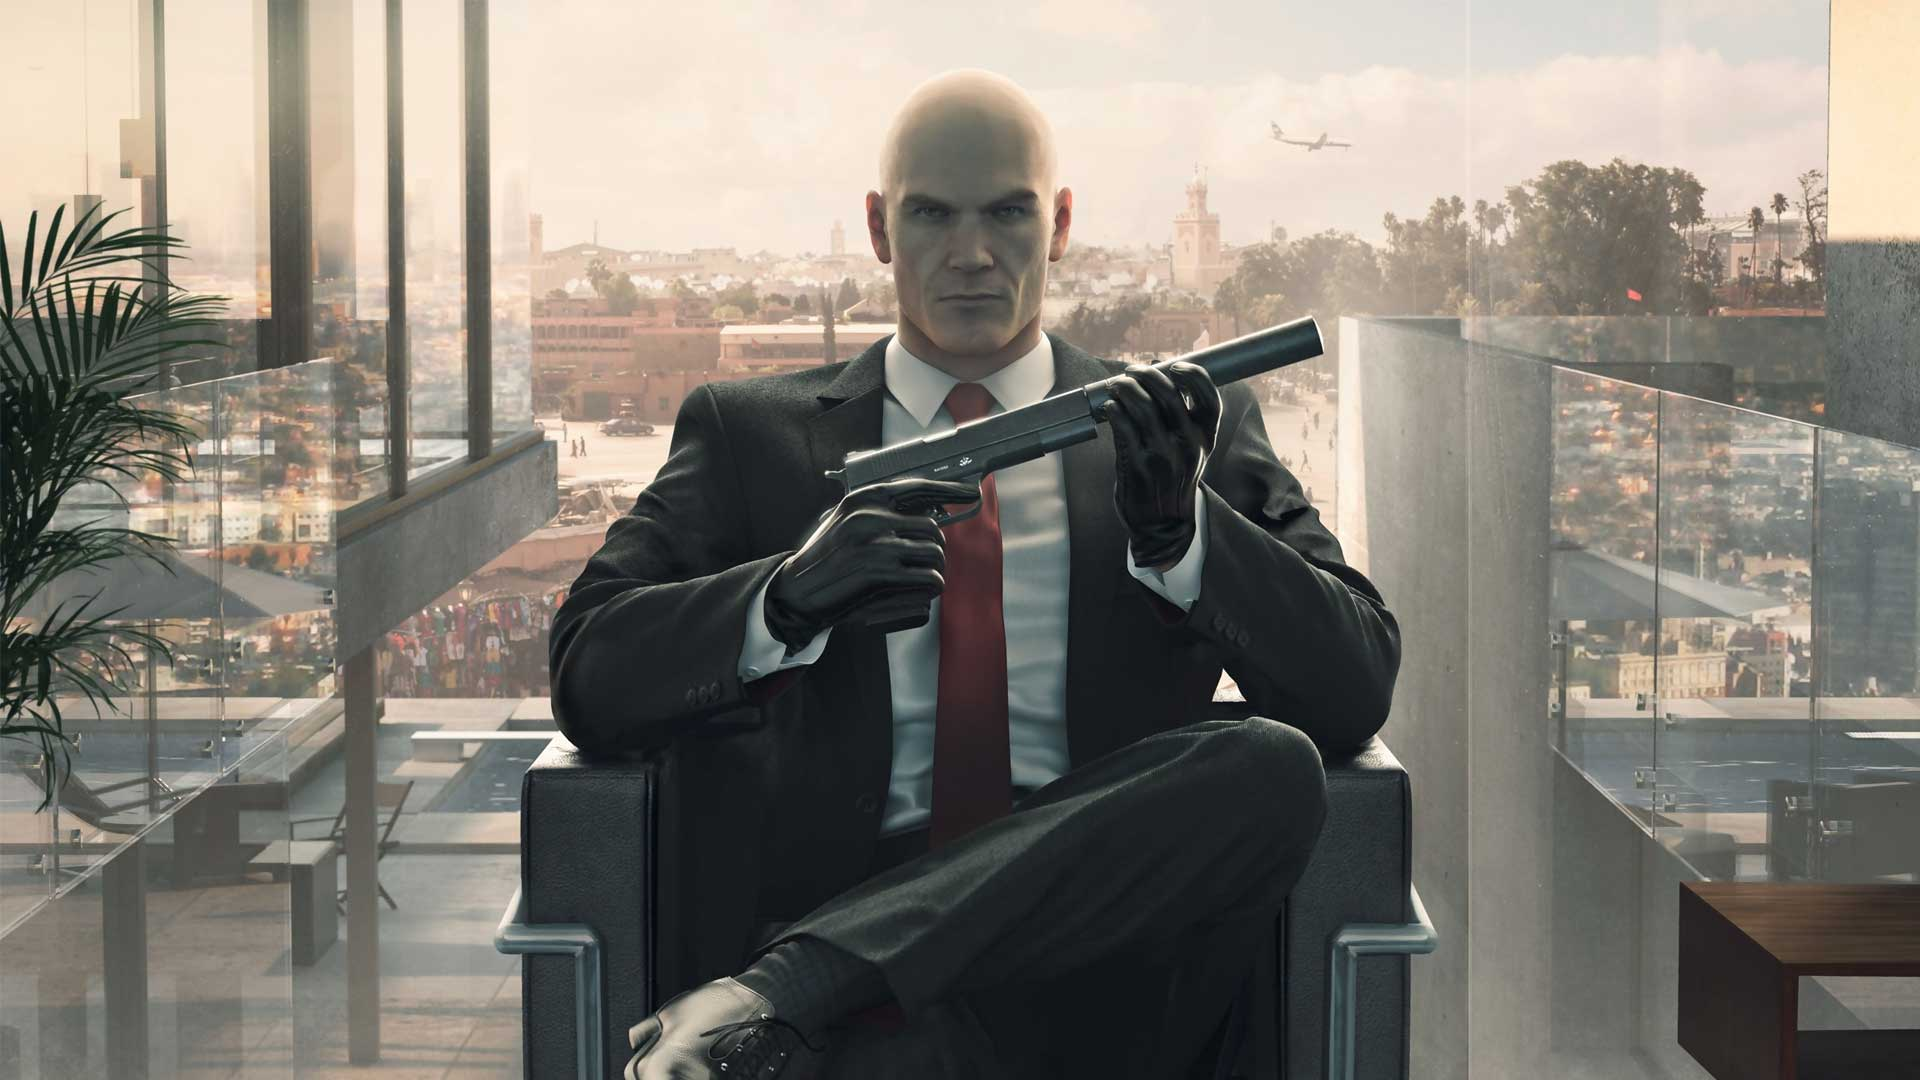 square-enix-parting-ways-with-hitman-developer-io-interactive.jpg